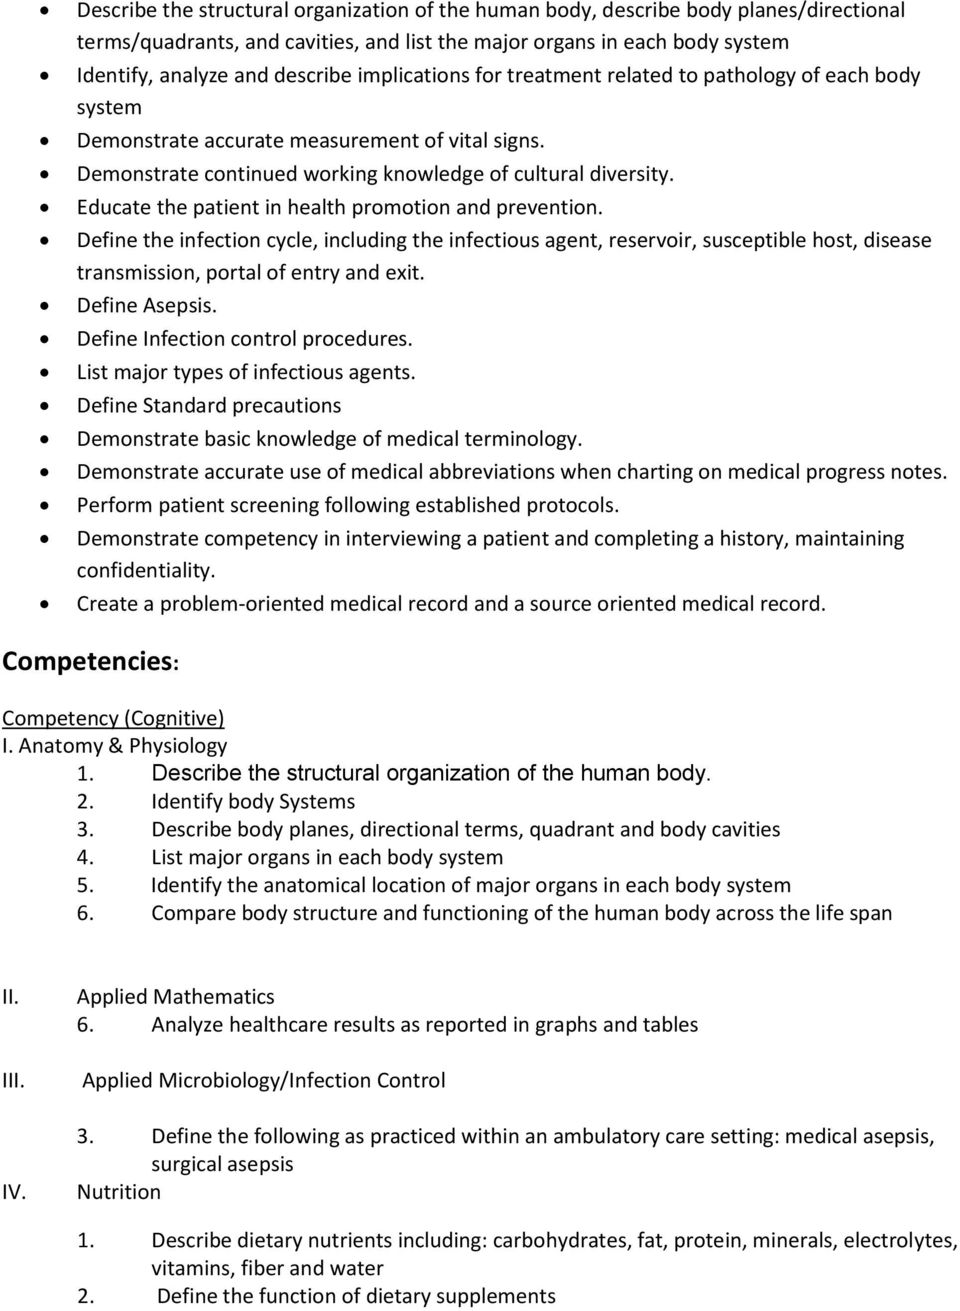 Course Title: Medical Assistant Clinical Procedures 1